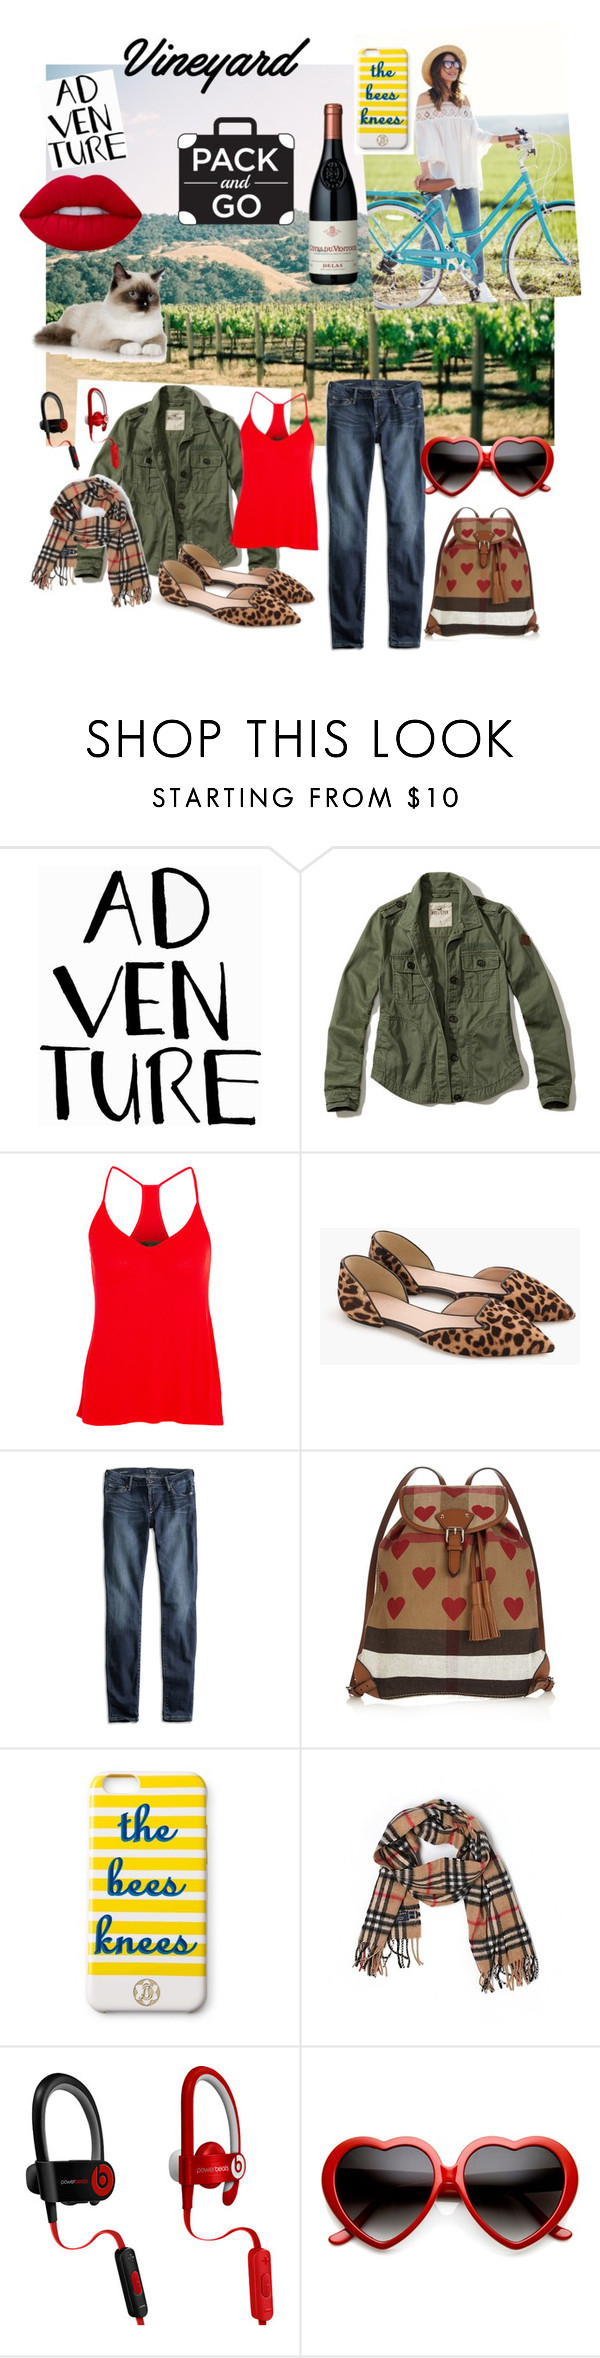 """Kit Cat Pack & Go Vinyard"" by leicklovelife ❤ liked on Polyvore featuring Hollister Co., Enza Costa, J.Crew, Lucky Brand, Burberry, Draper James, Beats by Dr. Dre and Lime Crime"